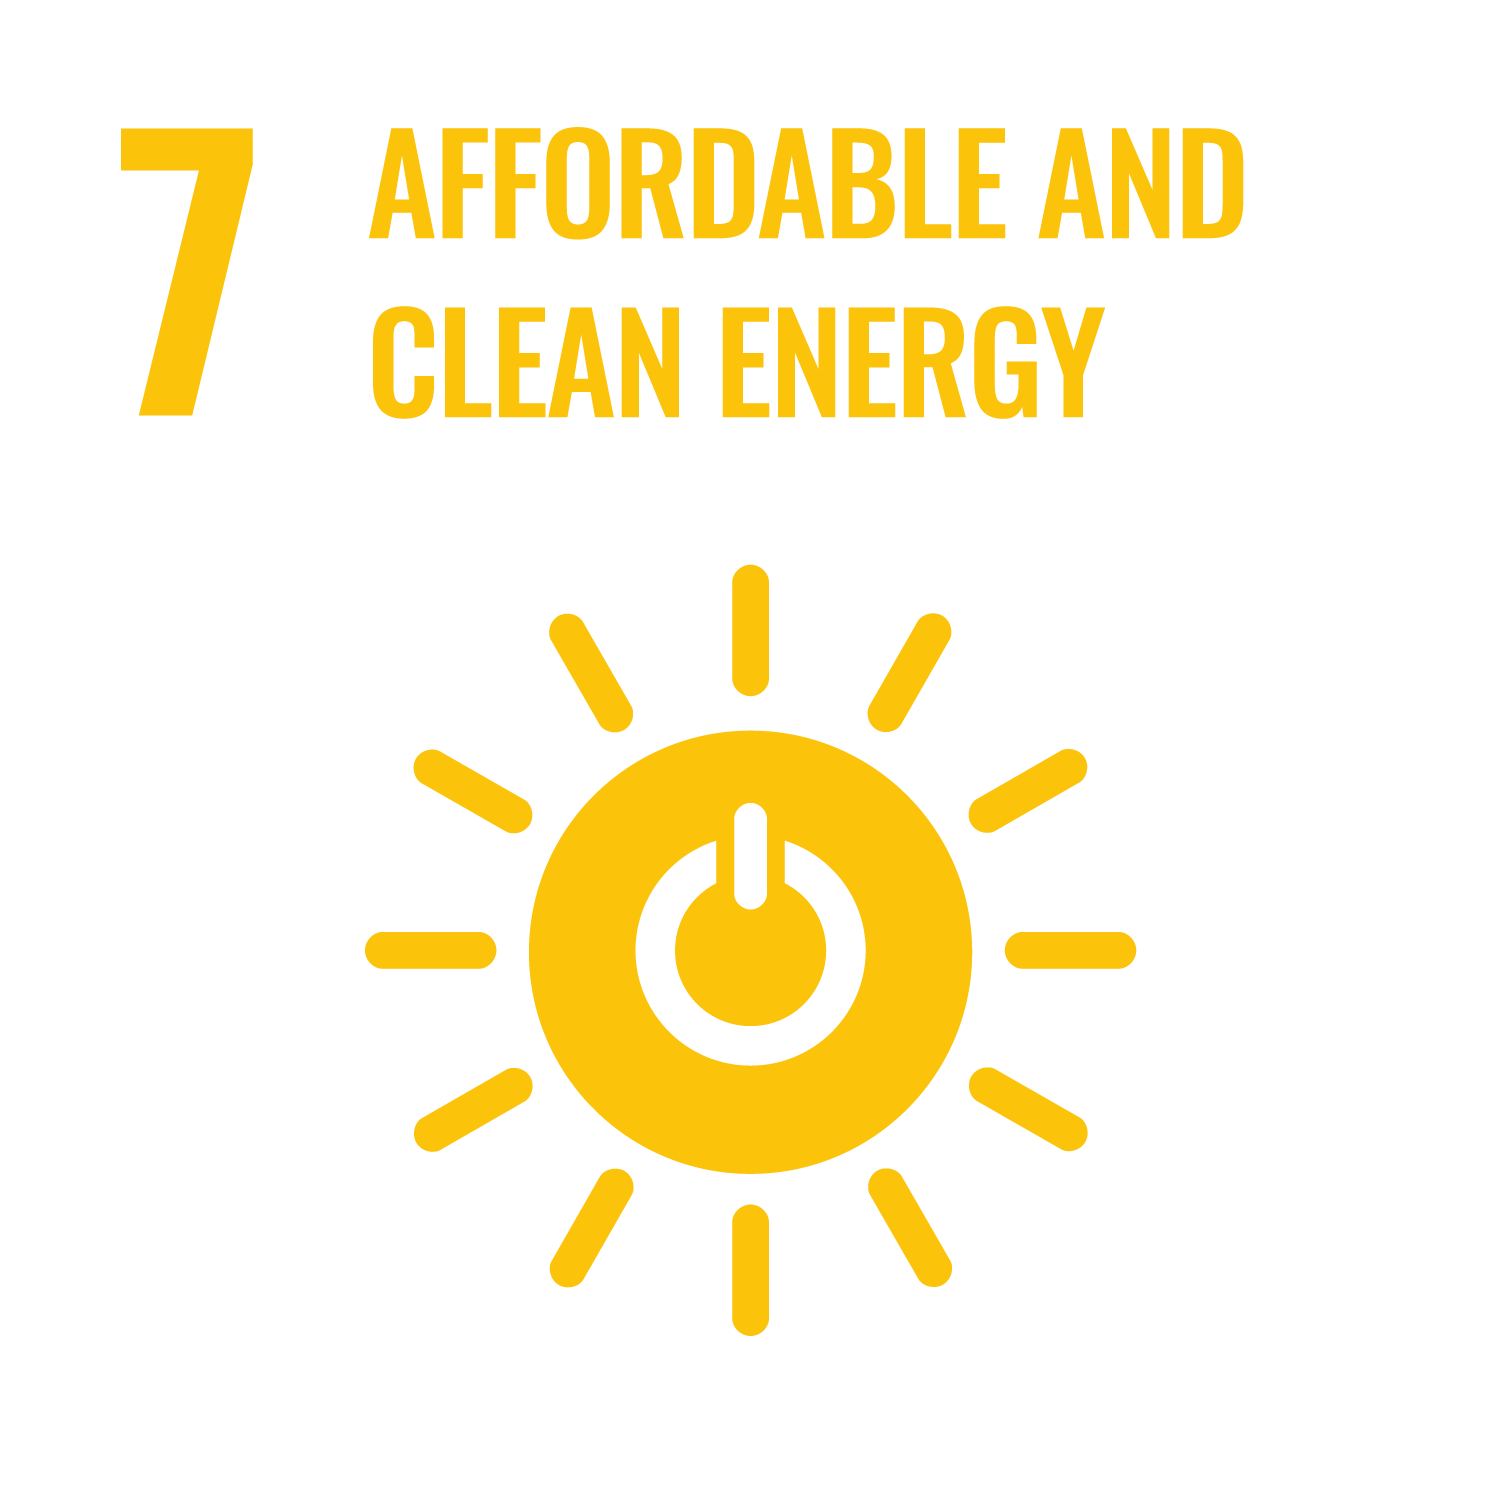 7_Affordable_And_Clean_Energy